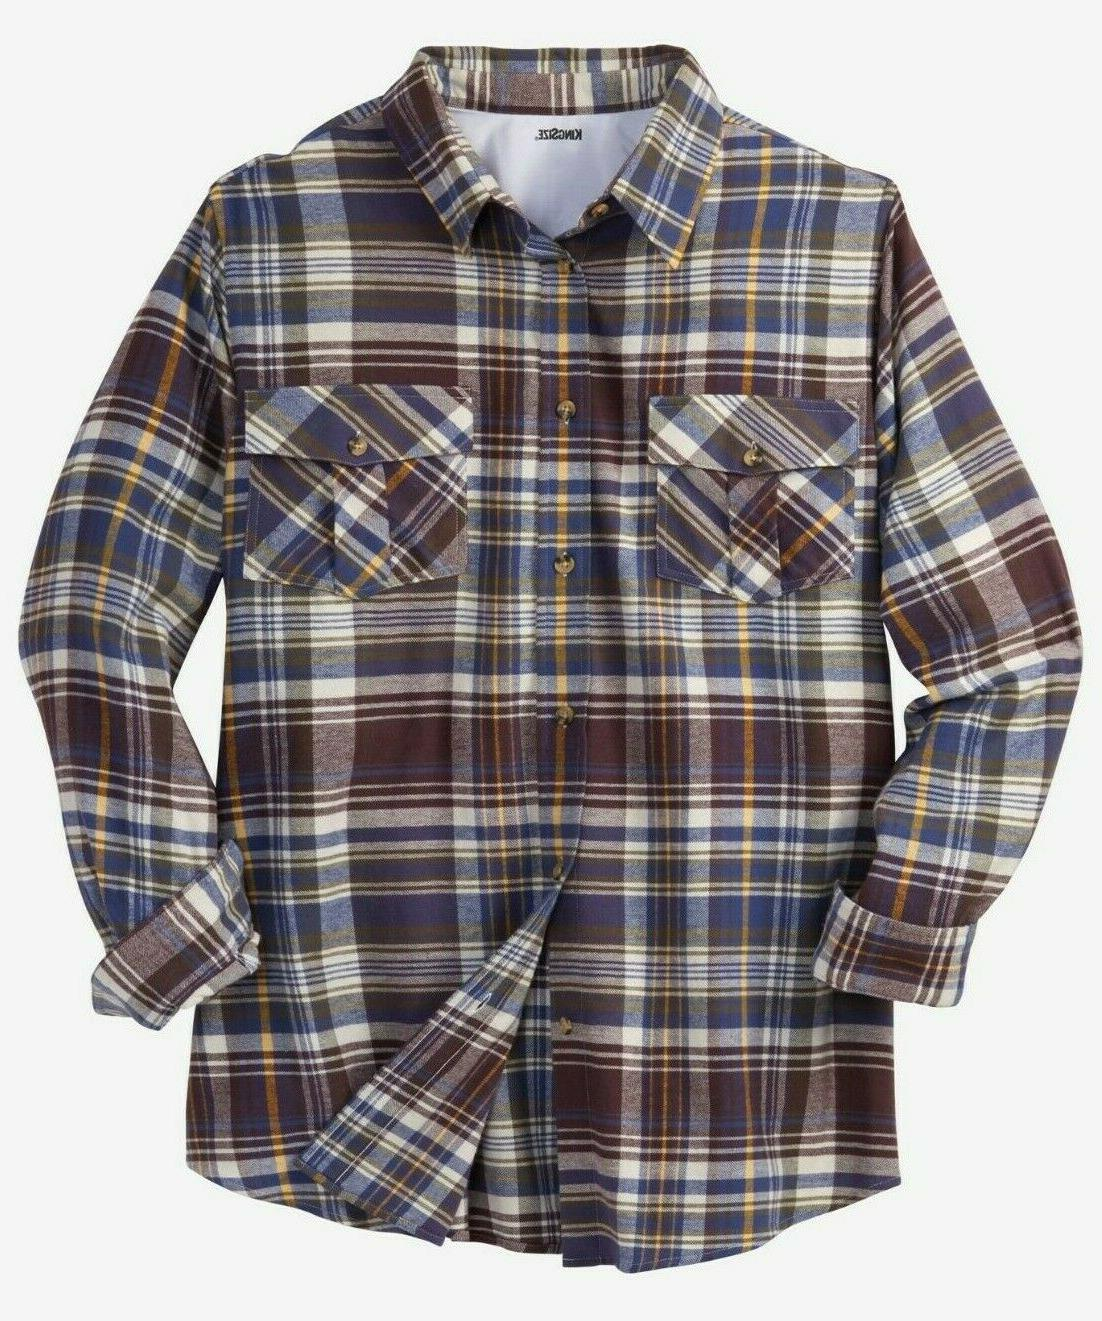 59 nwot mens sz 5xl big raisin